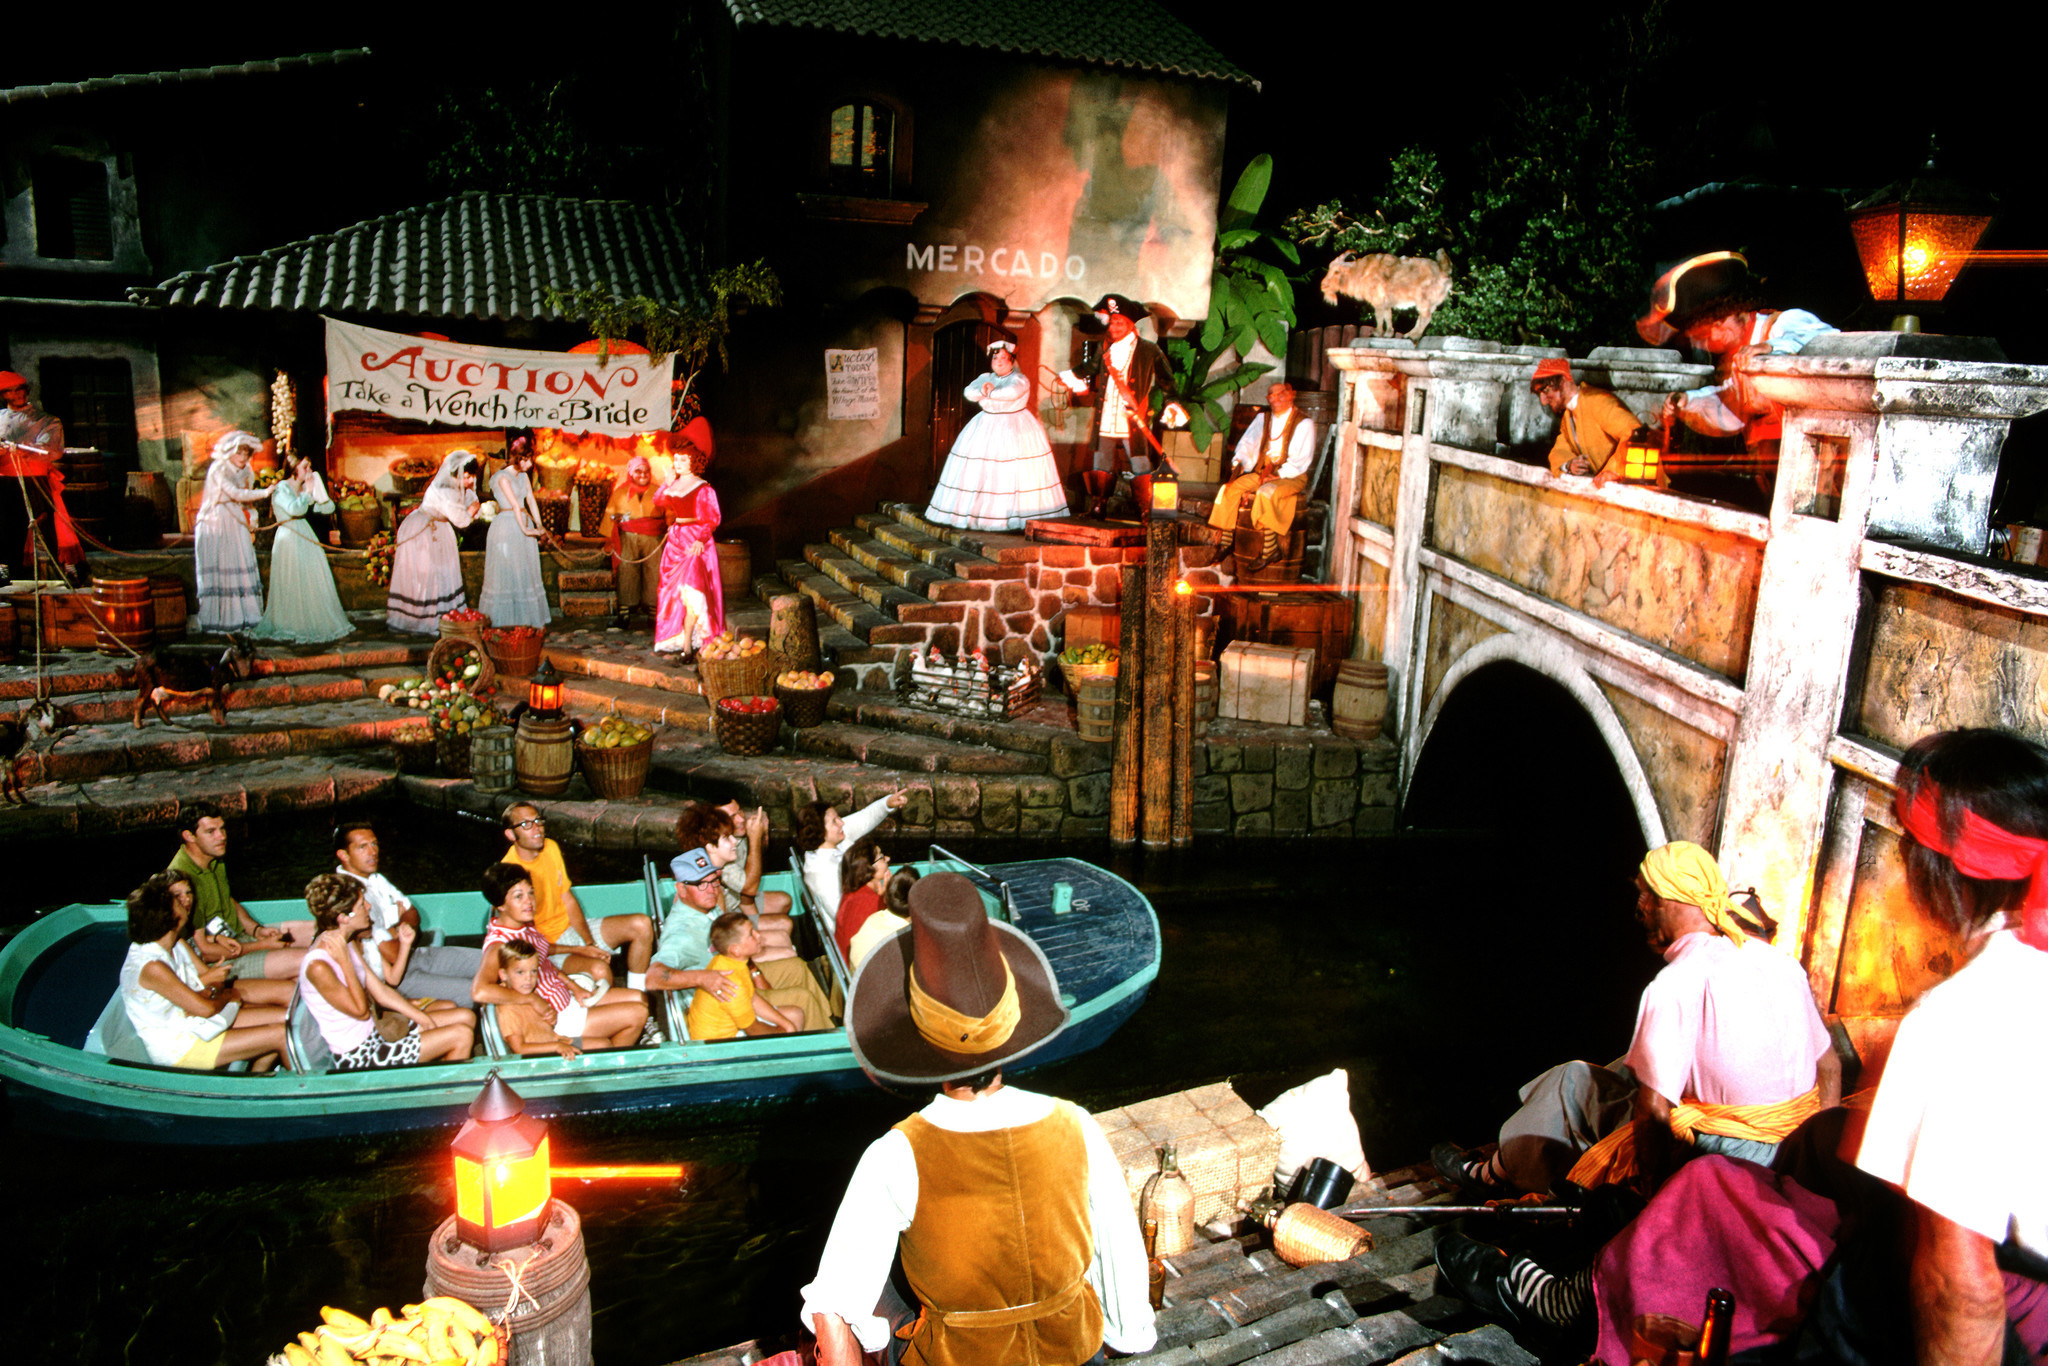 Disneyland's Pirates of the Caribbean: 50 years of change